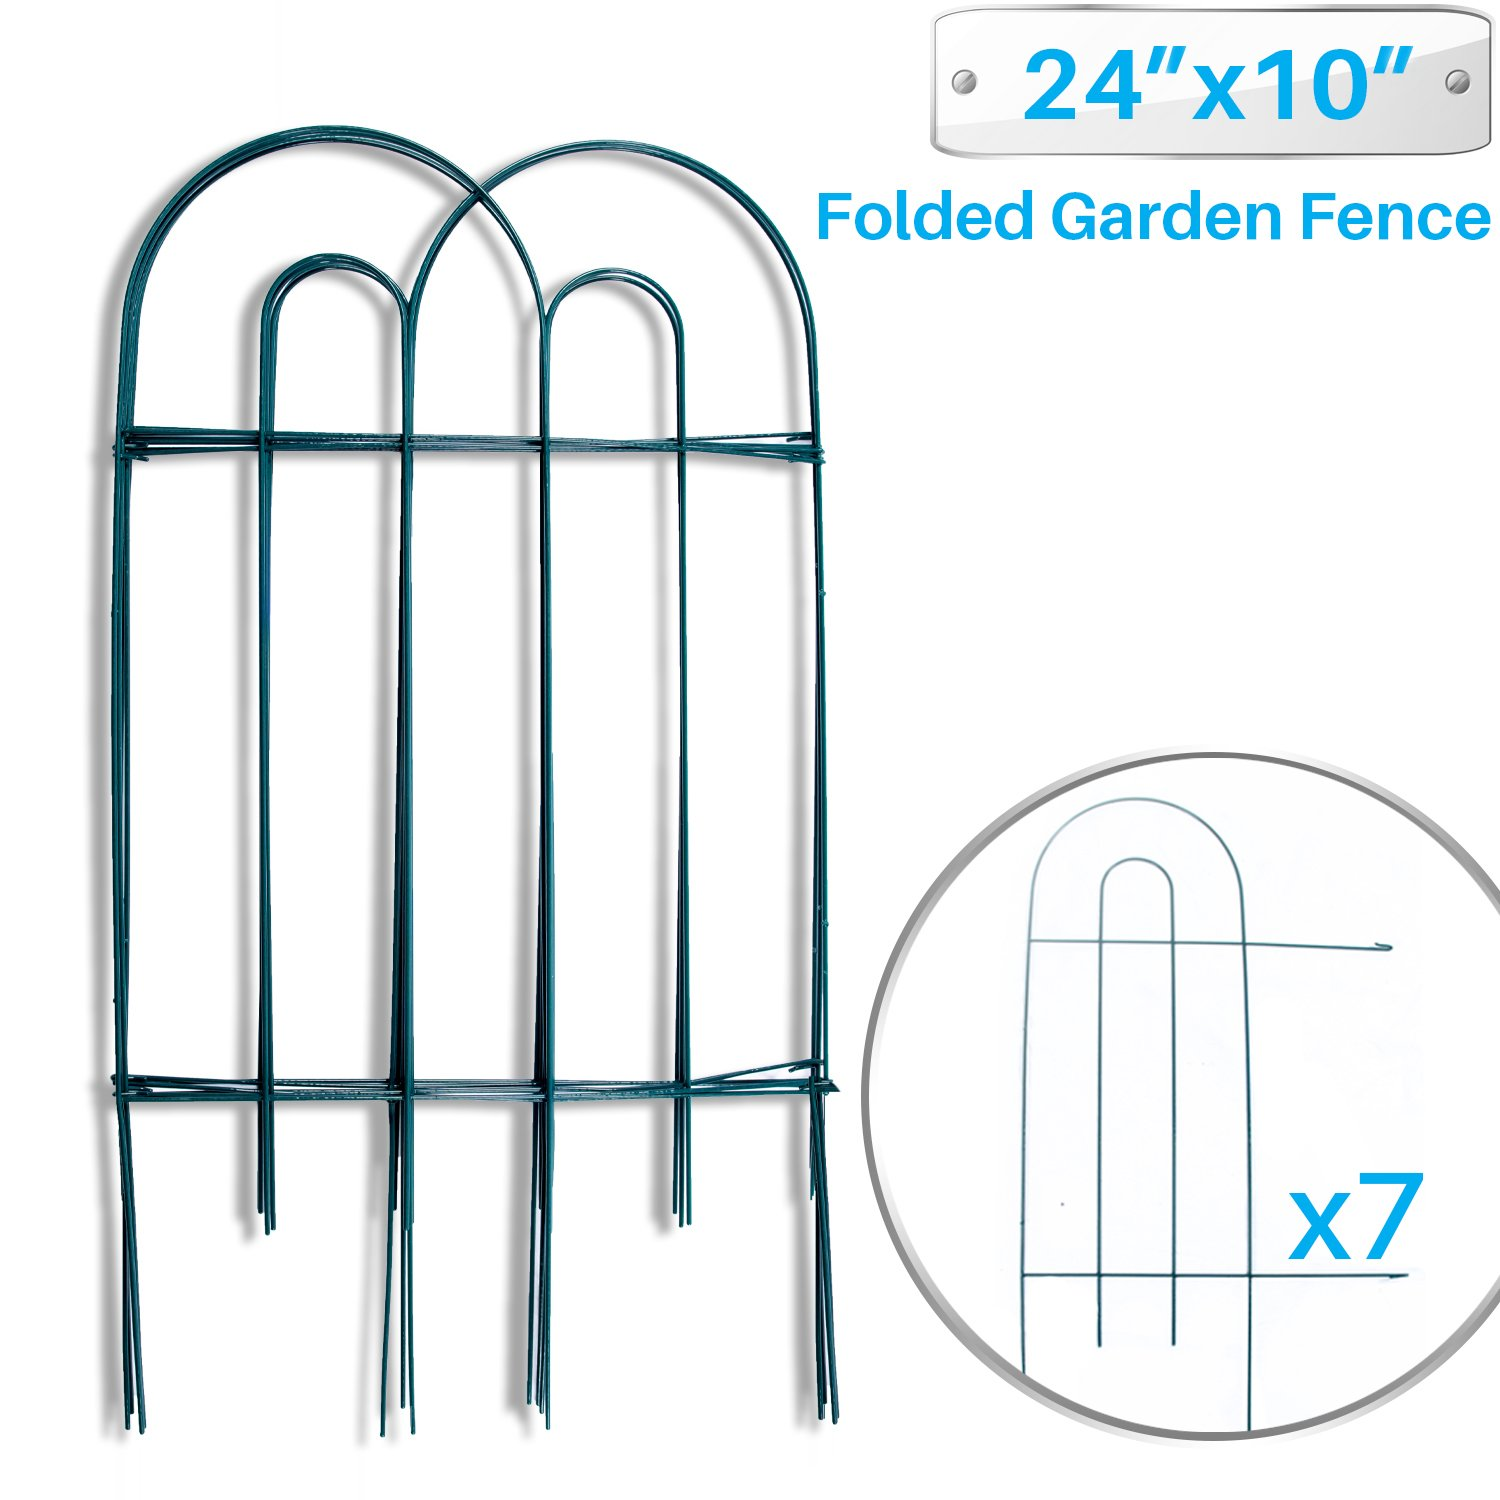 Patio Paradise Garden Border Folding Fence 24 x 10-Inch - 7 Panels Garden Barrier Portable Decorative Flower Fence Wire Metal Anchor Fence